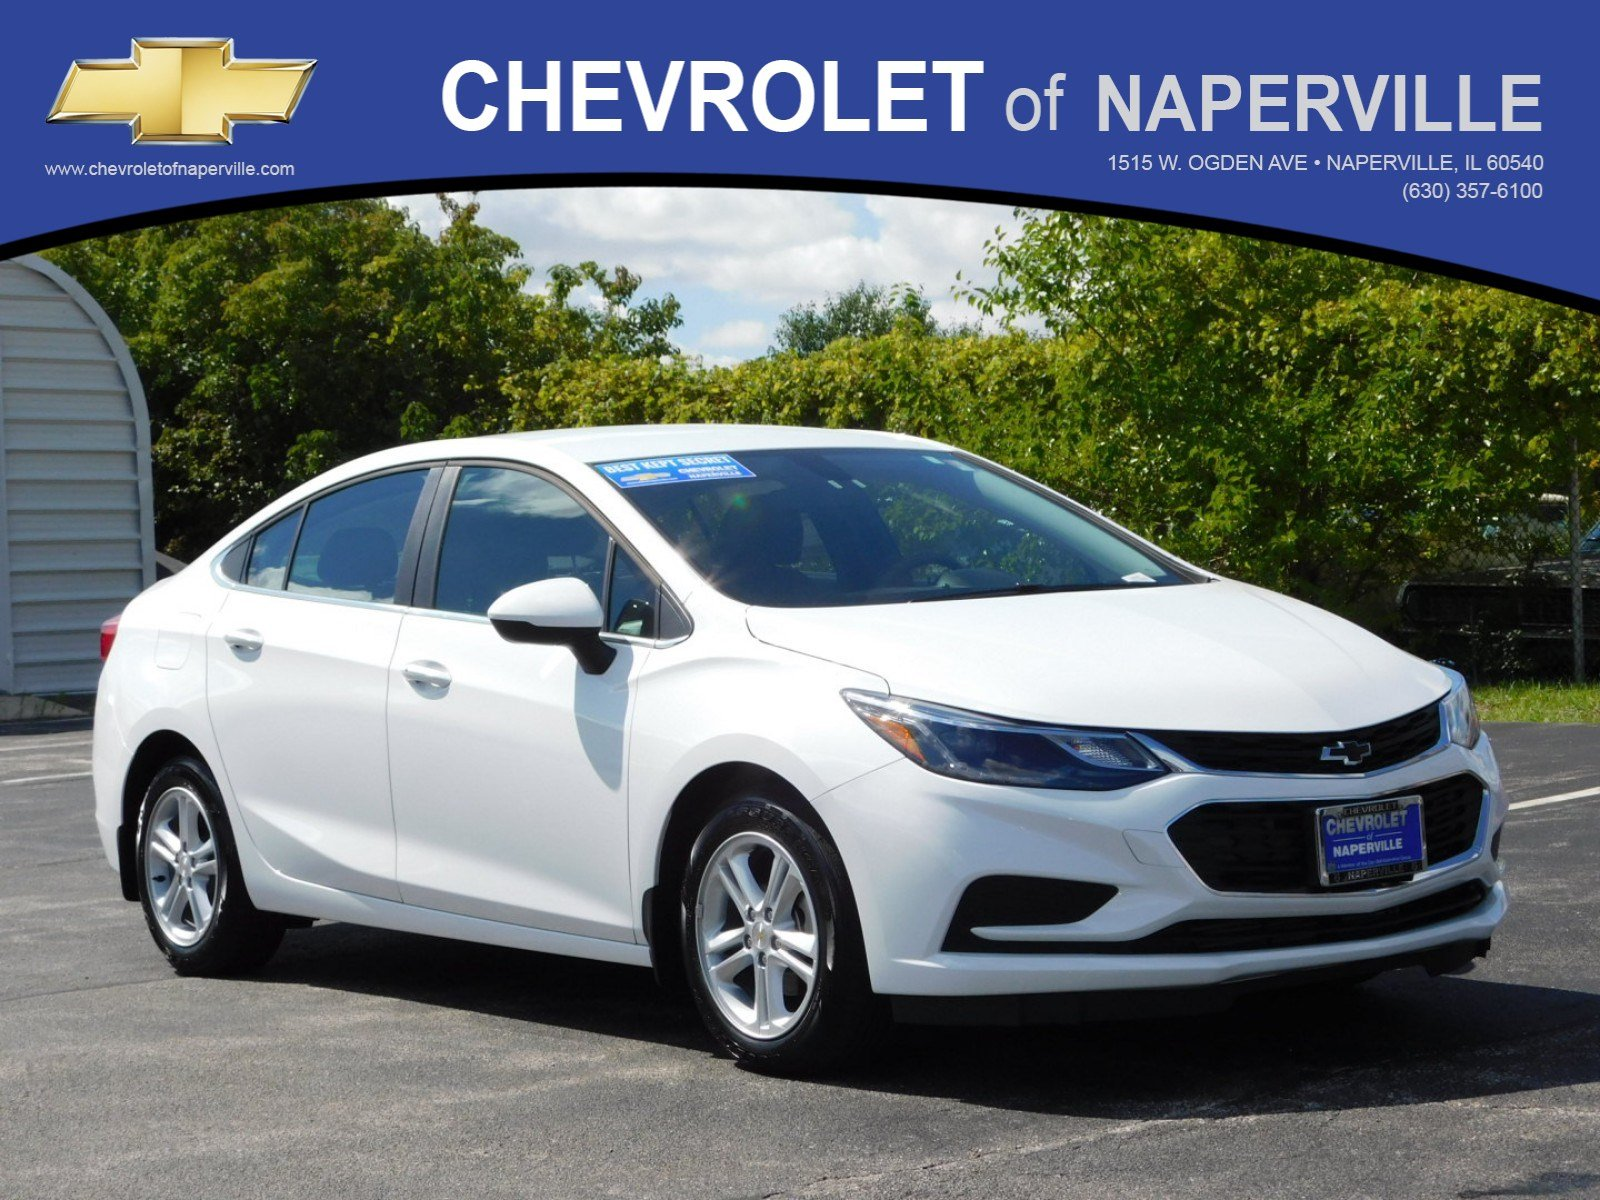 Chevrolet Cruze Repair Manual: Front Seat Belt System